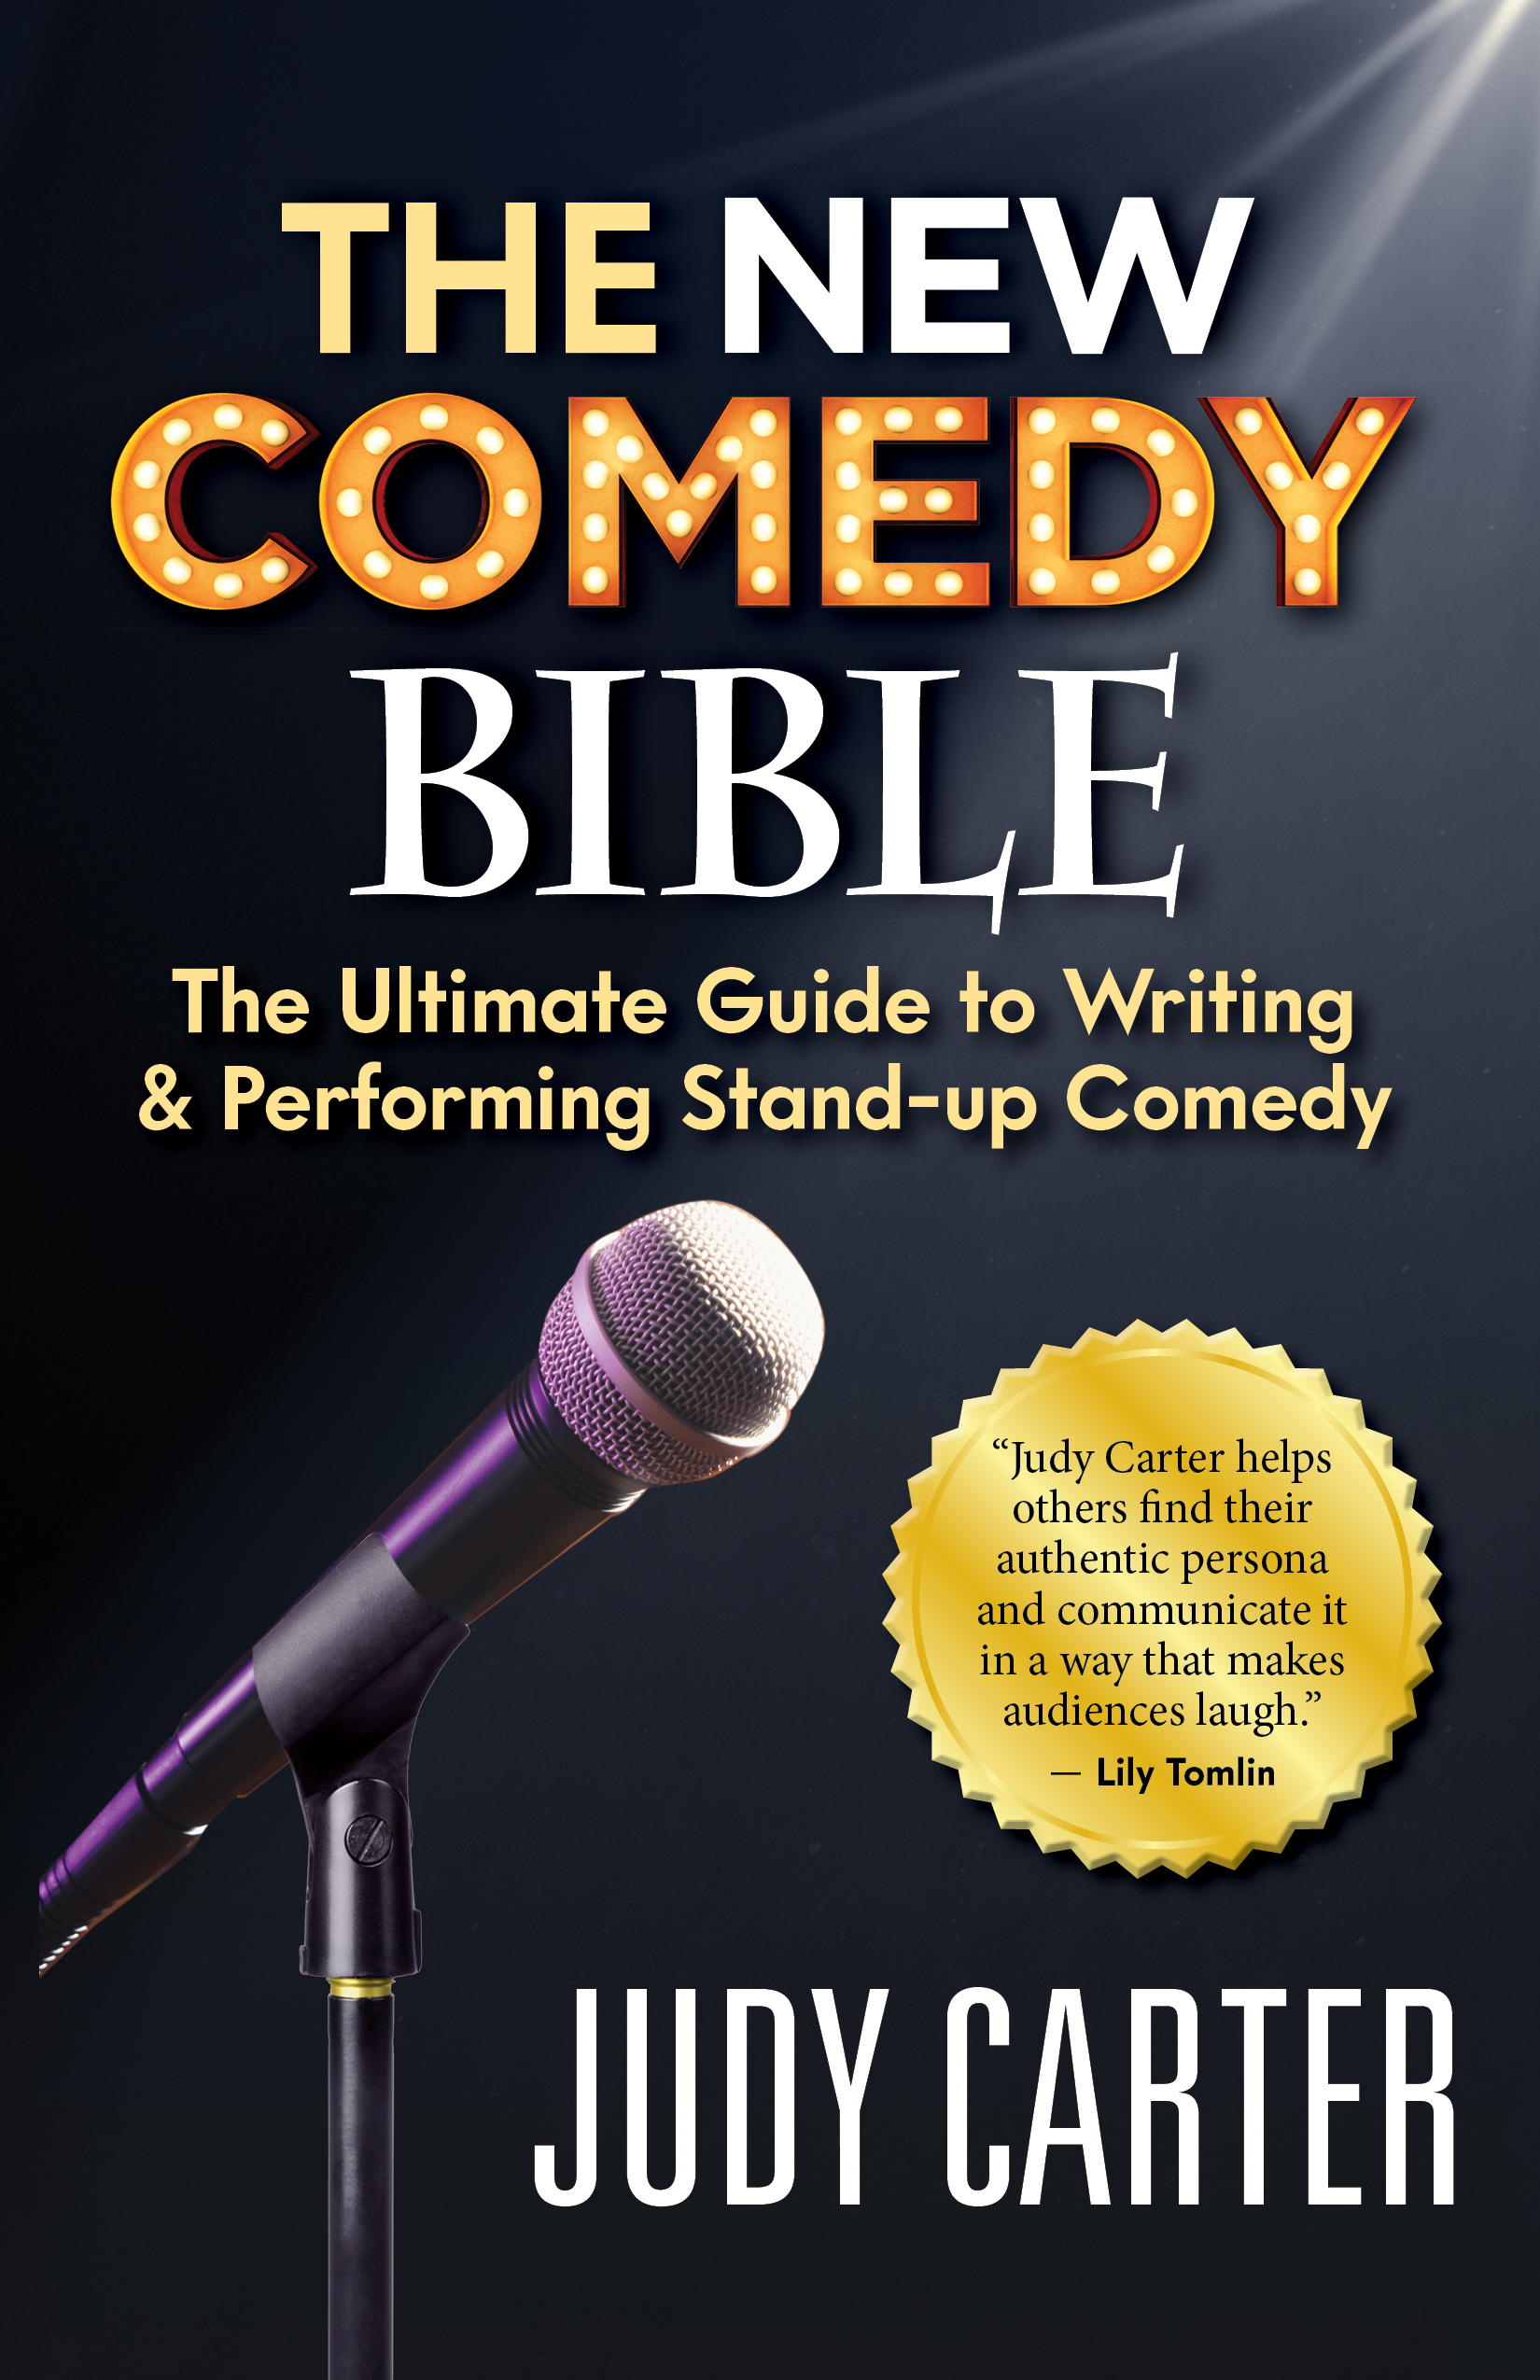 The New Comedy Bible